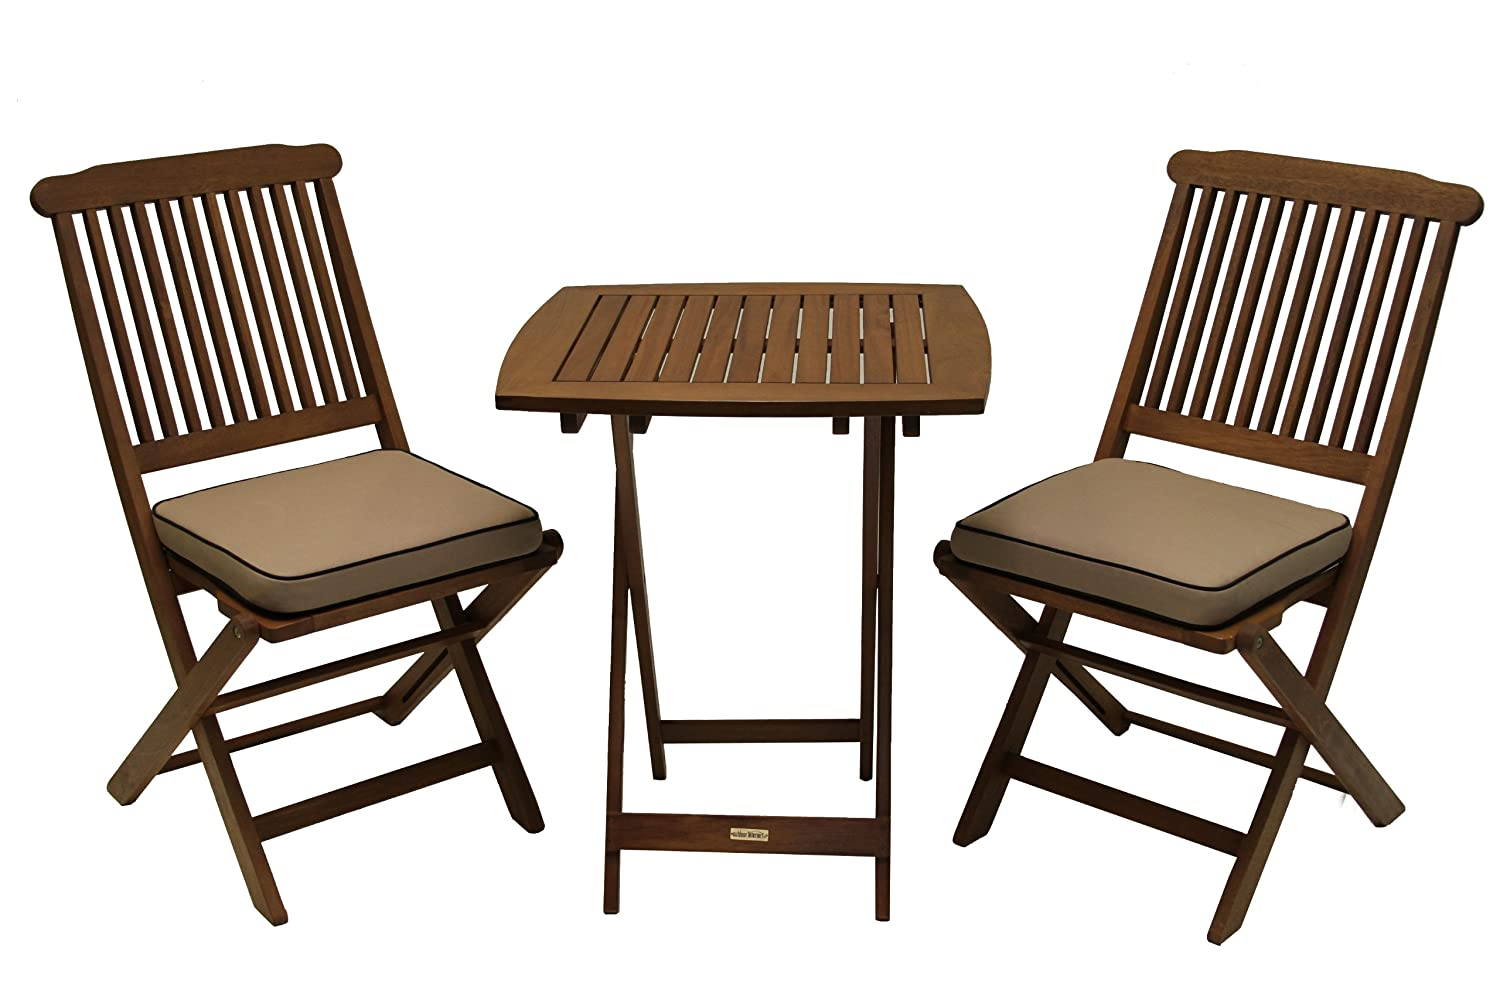 Wood patio furniture sets at the galleria for Lawn patio furniture